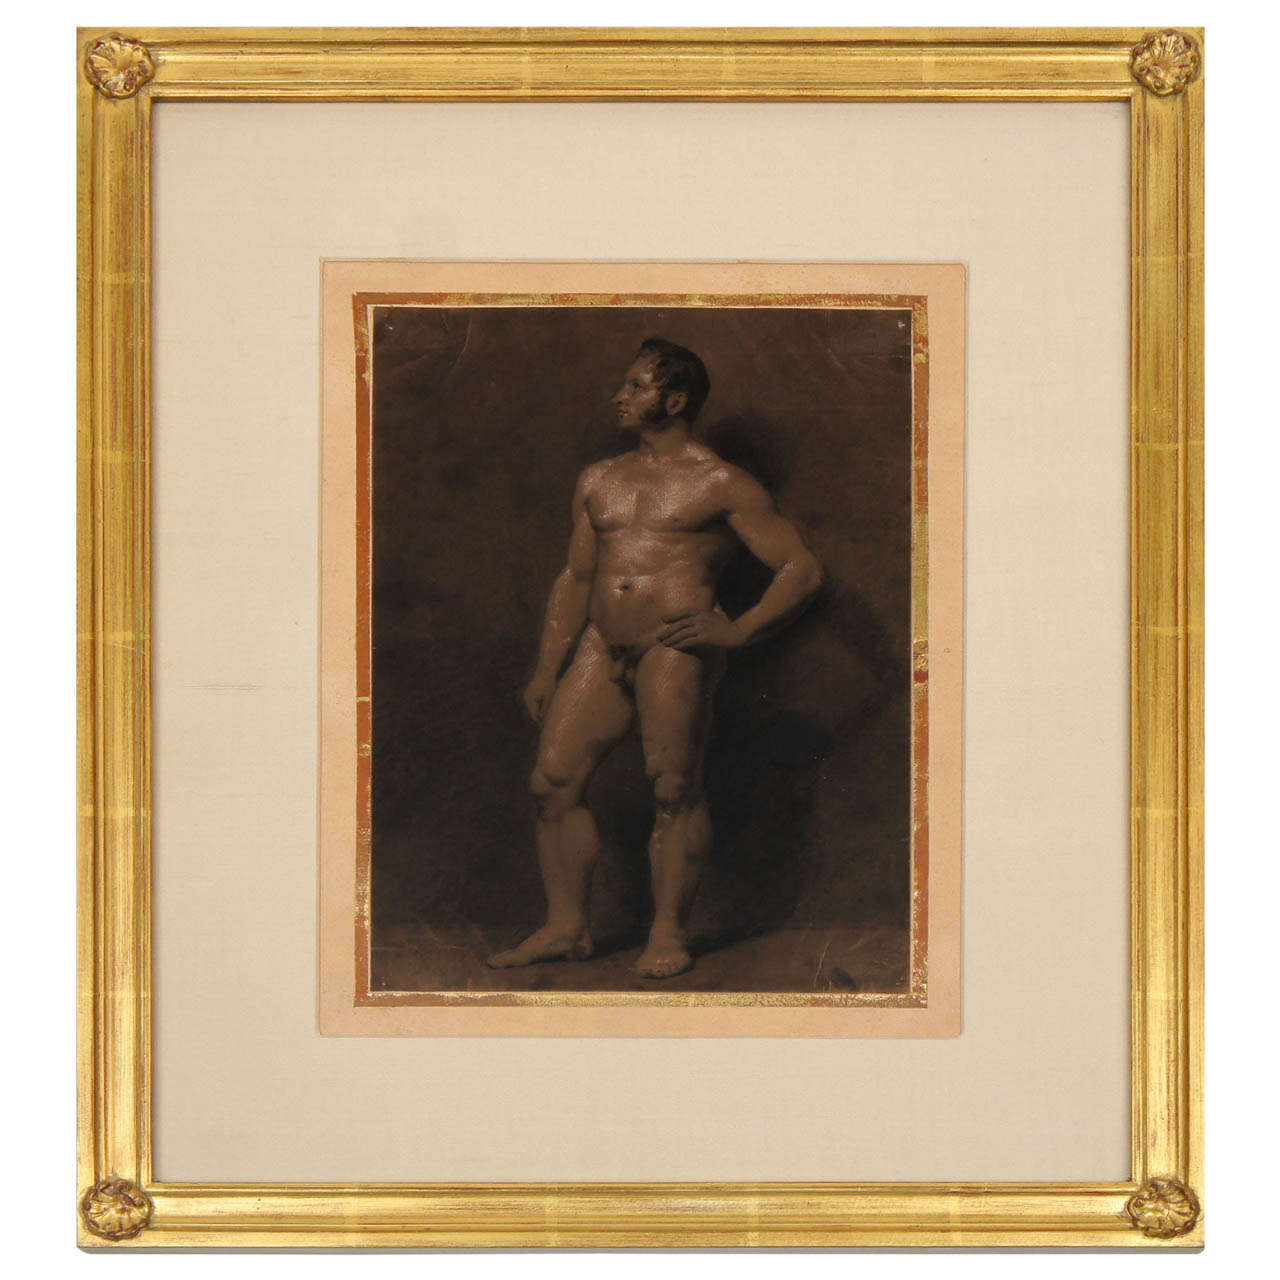 Male Nude Academic Painting on Paper, France c. 1810